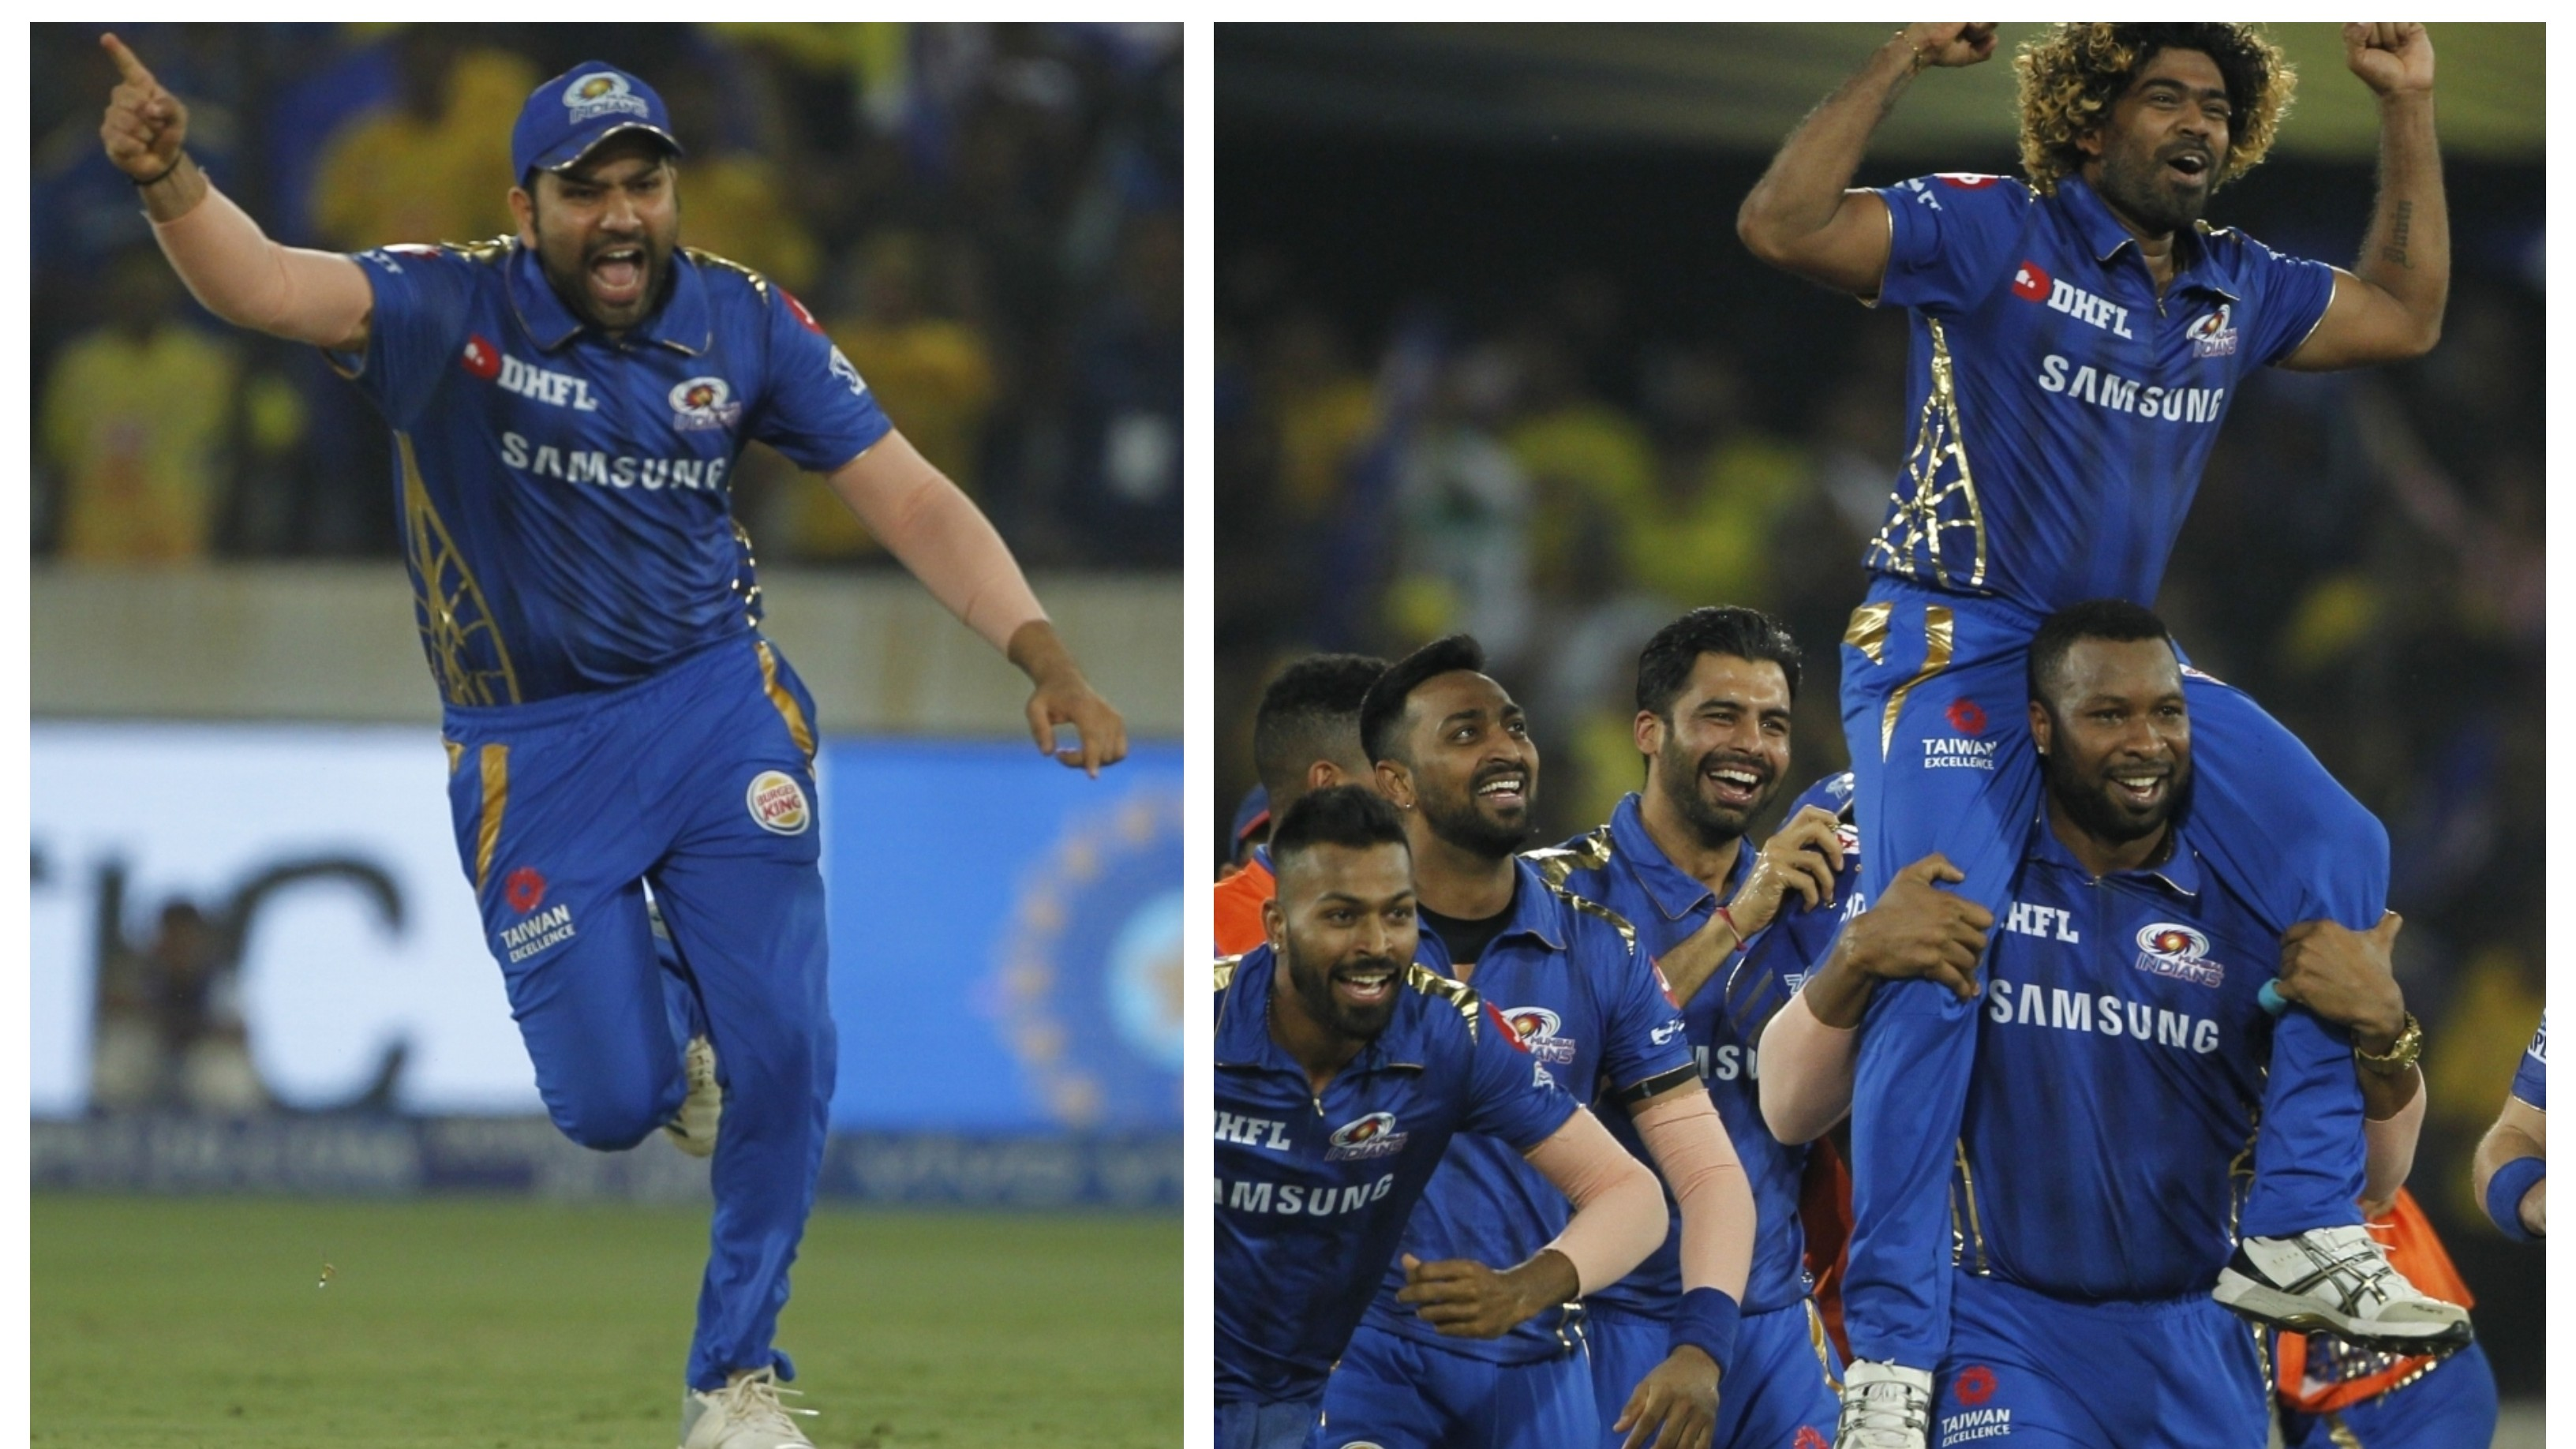 IPL 2019: Captain Rohit Sharma and other MI players react after beating CSK in a tense final